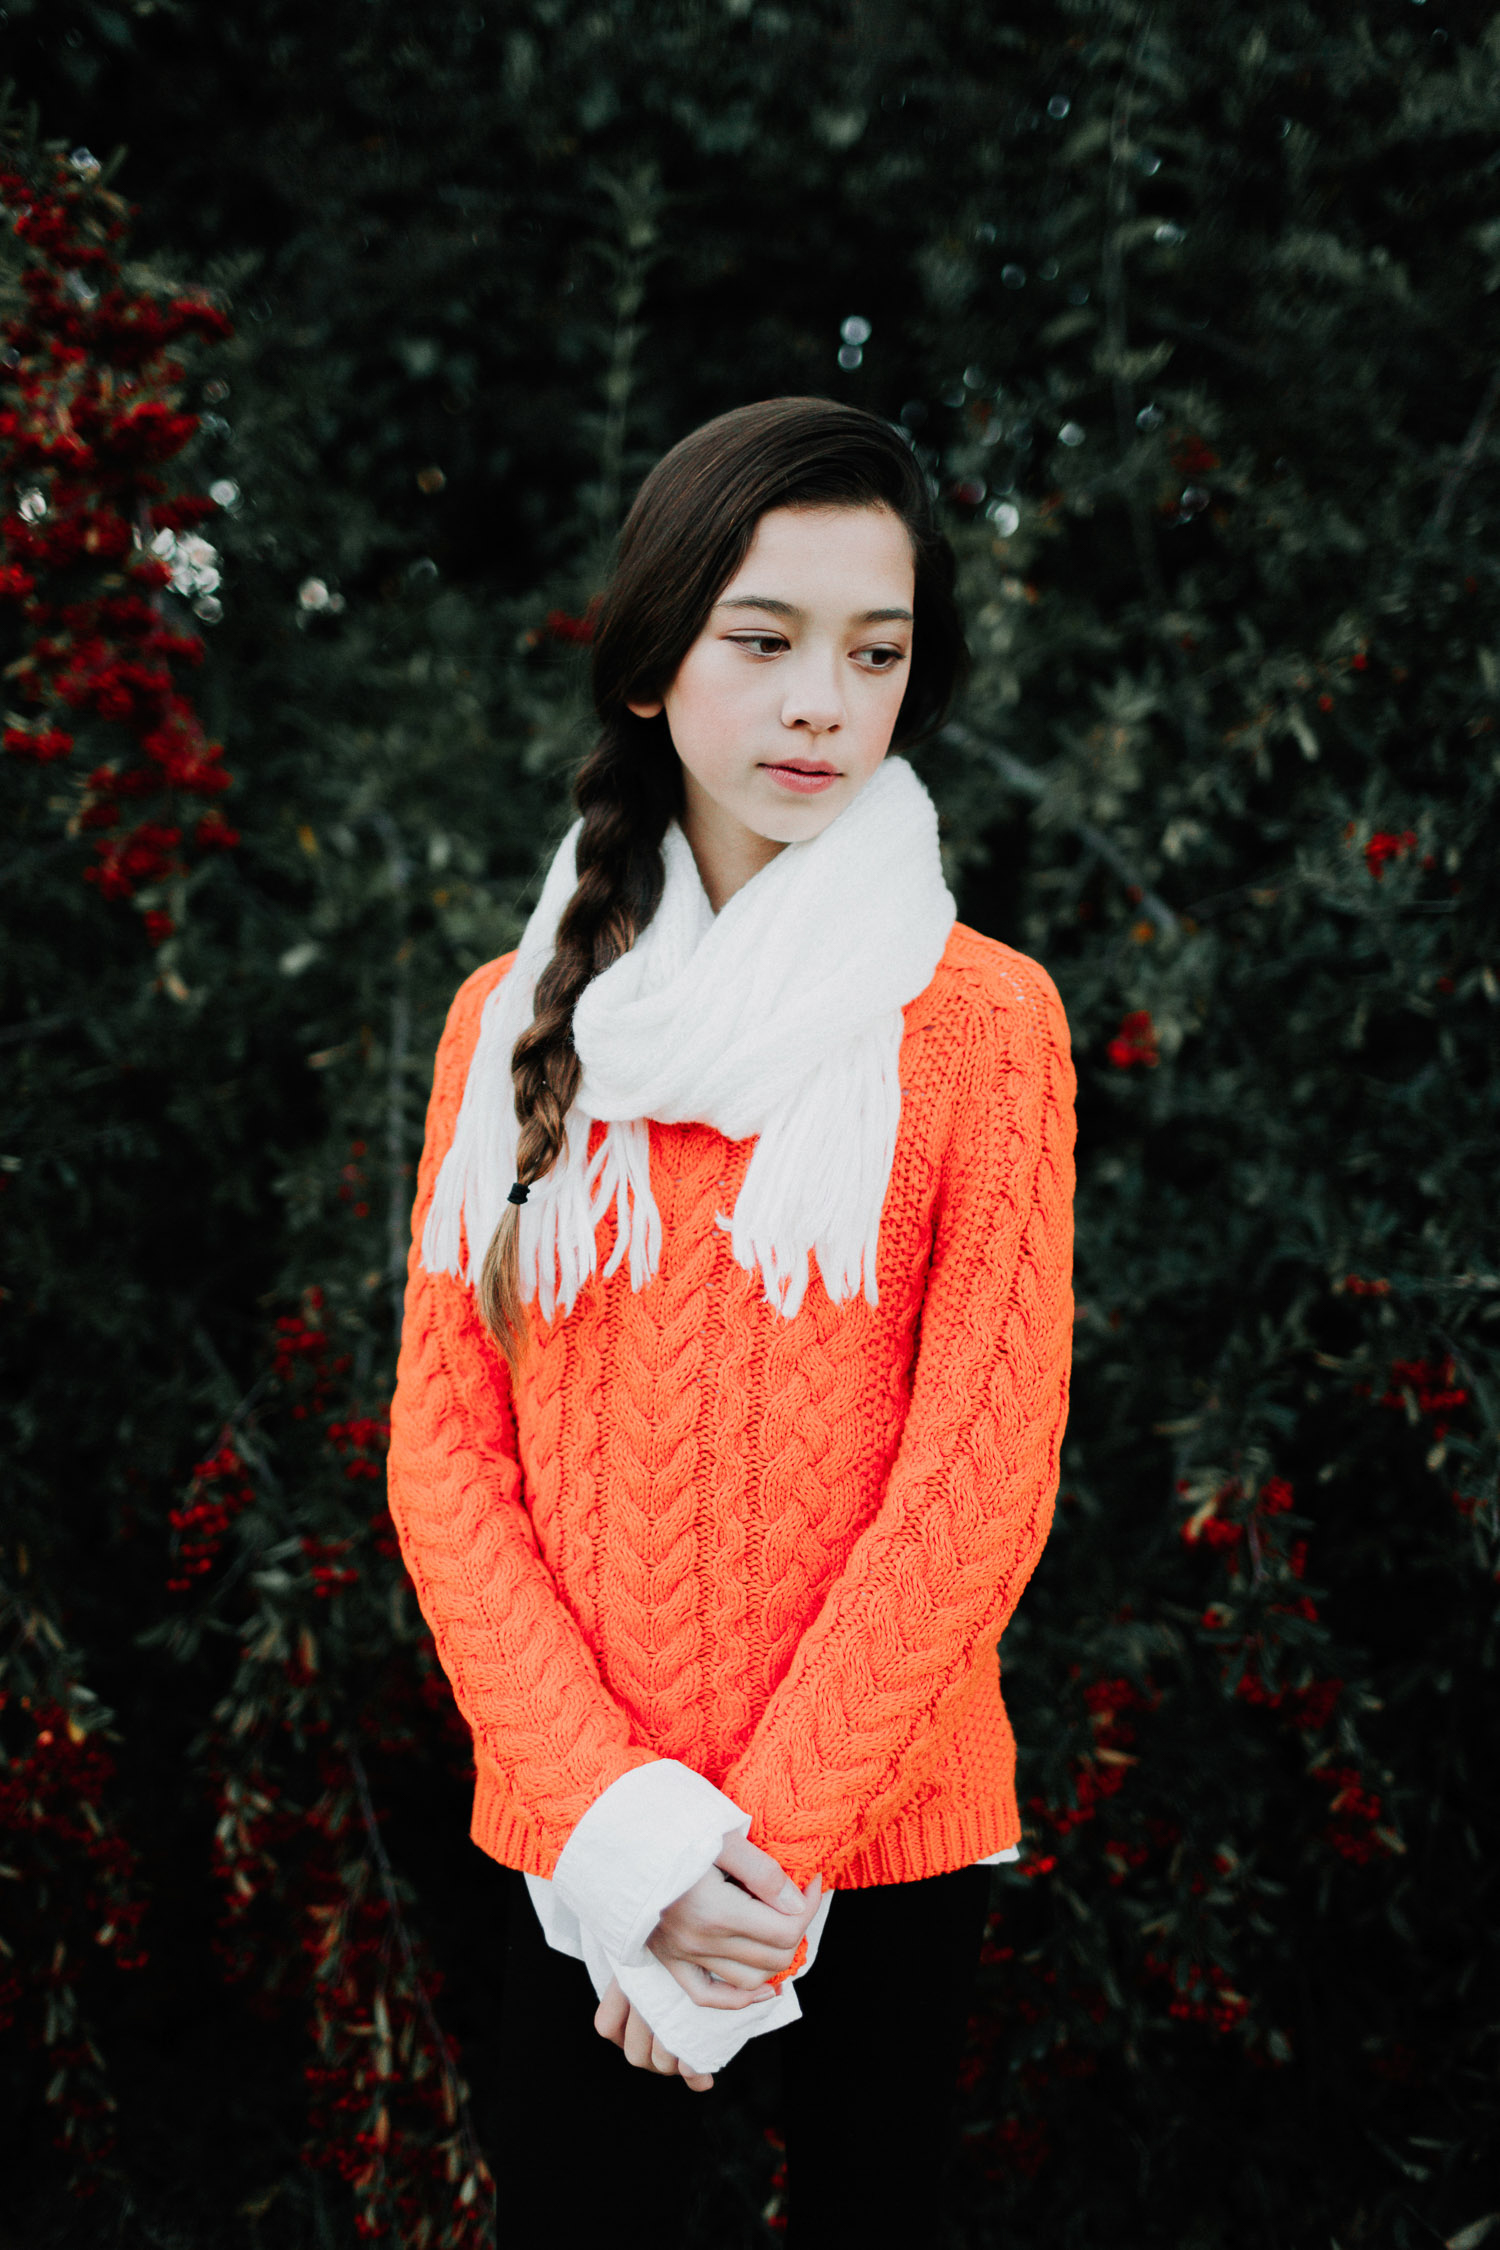 Image of orange sweater girl looking to the right